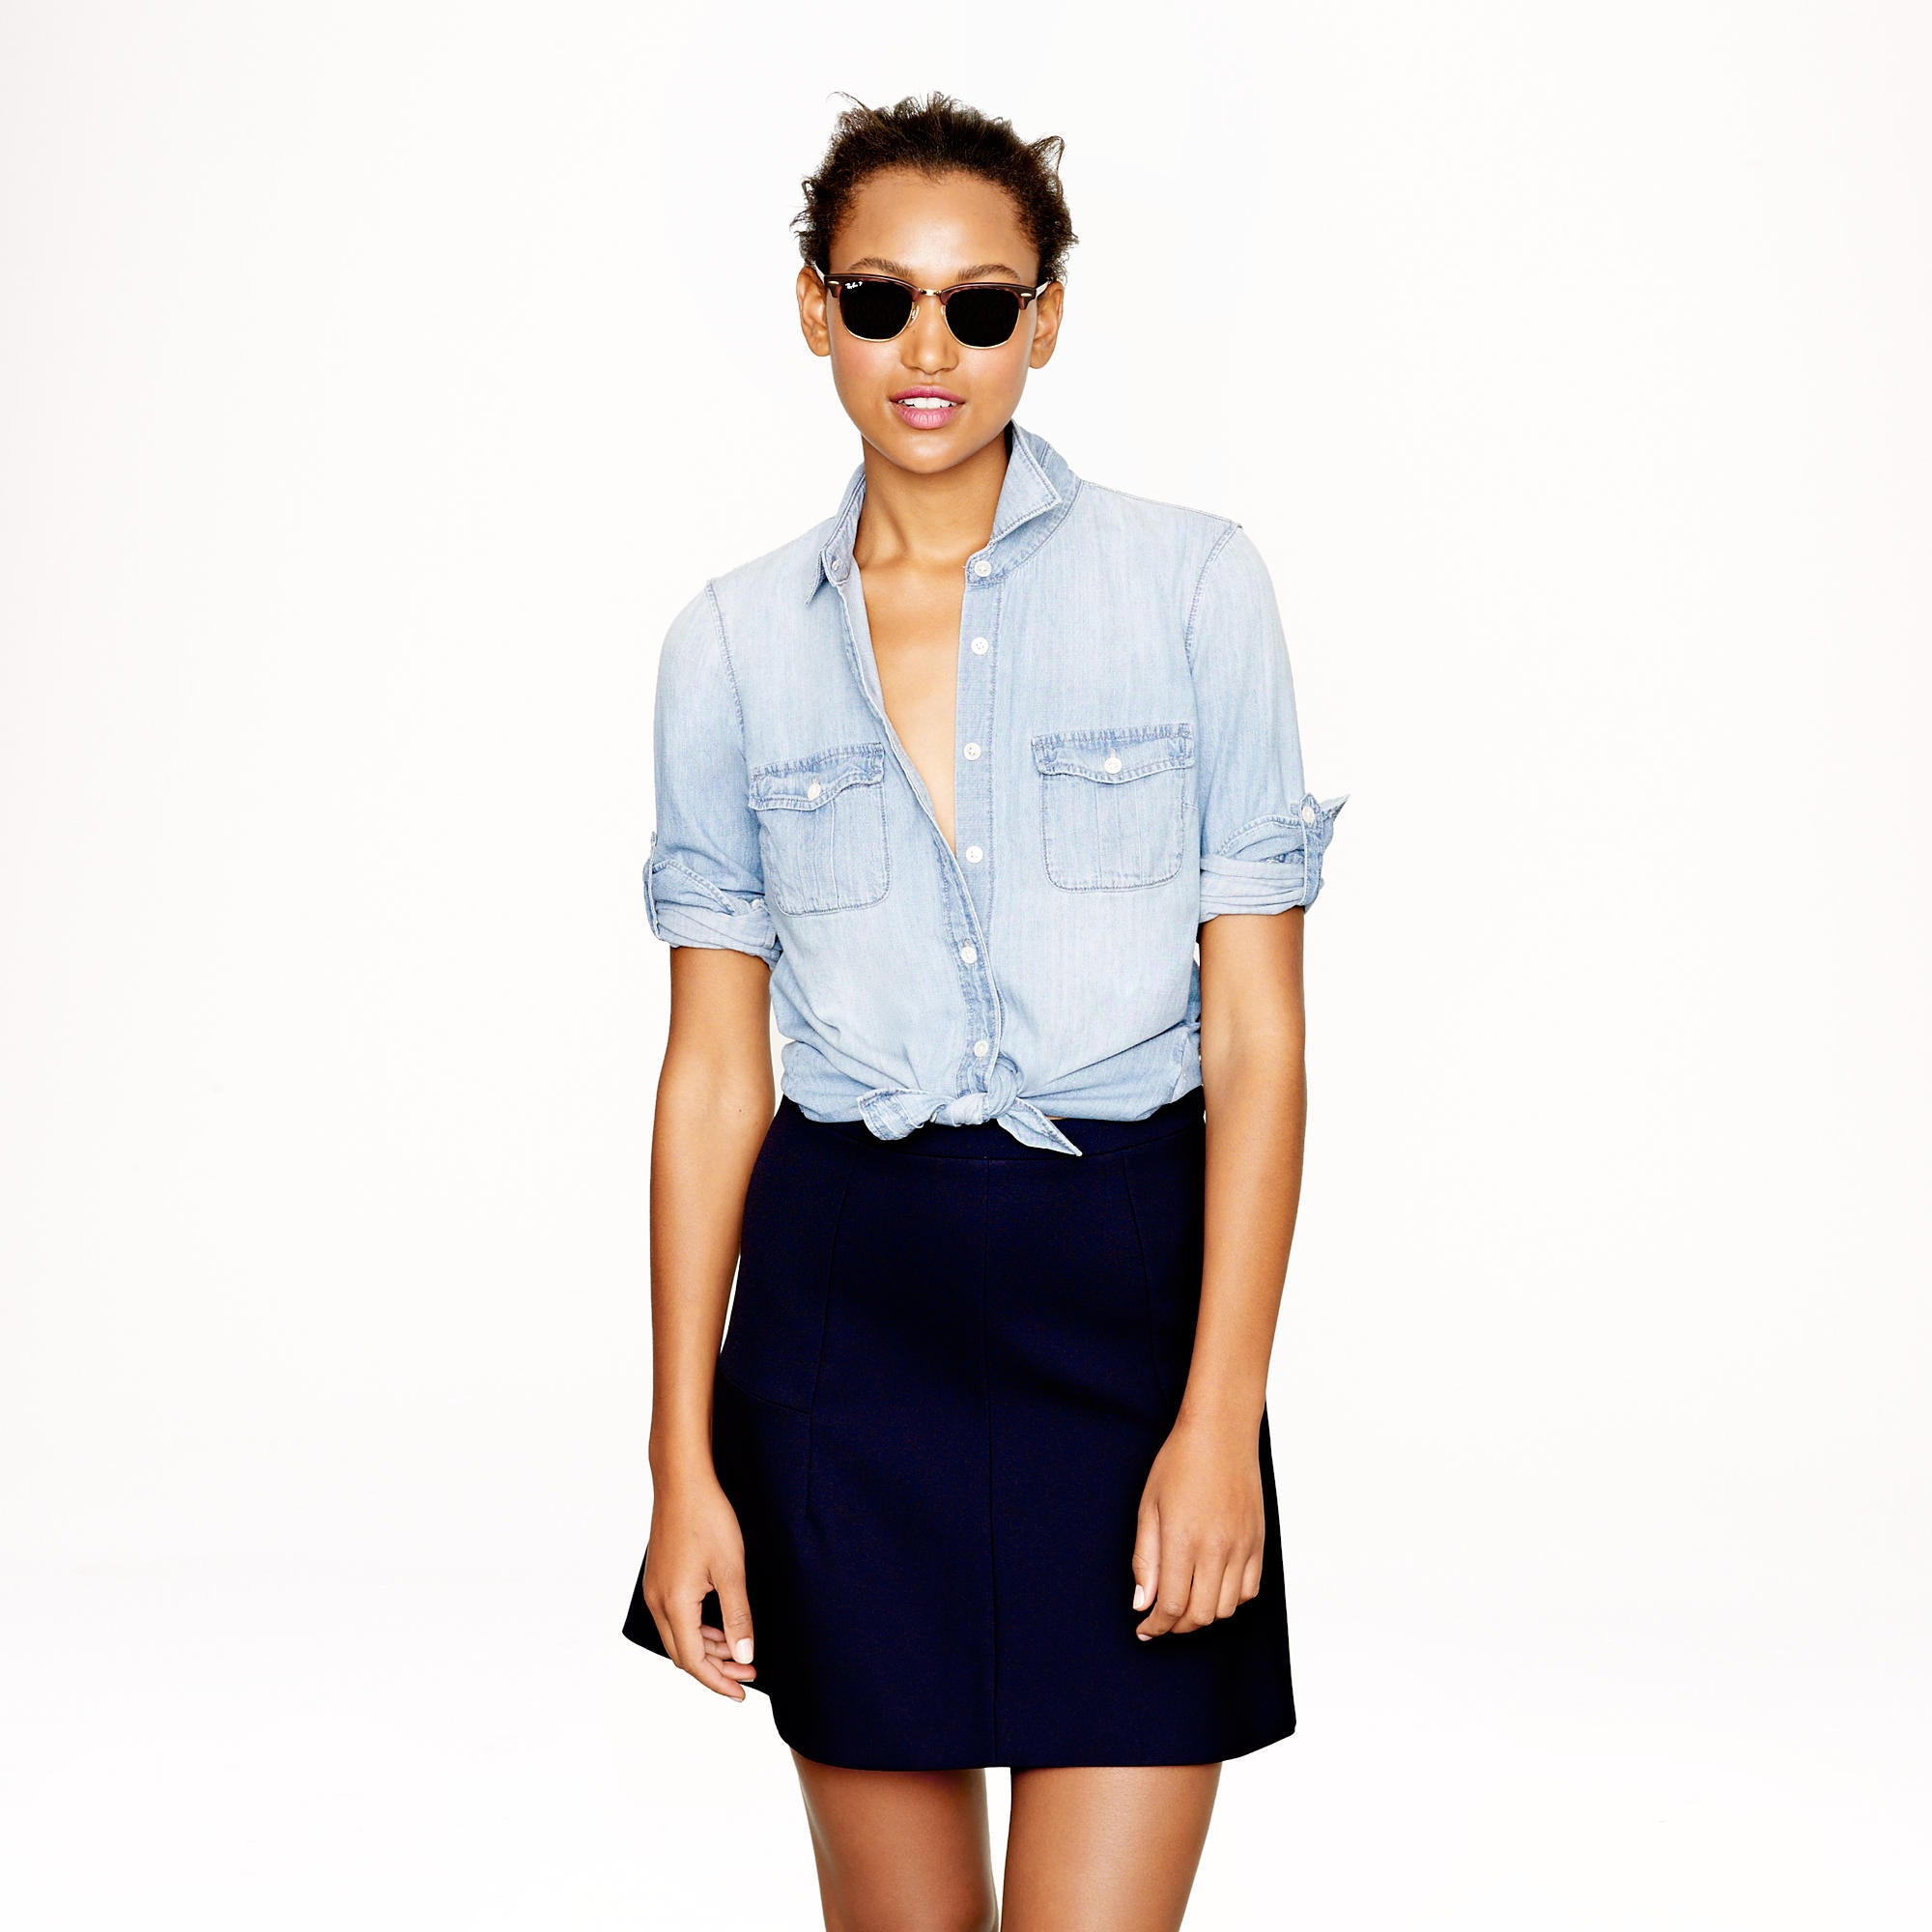 This spring is going to be all about the chambray denim shirt. Above, Jcrew Keeper Chambray Shirt